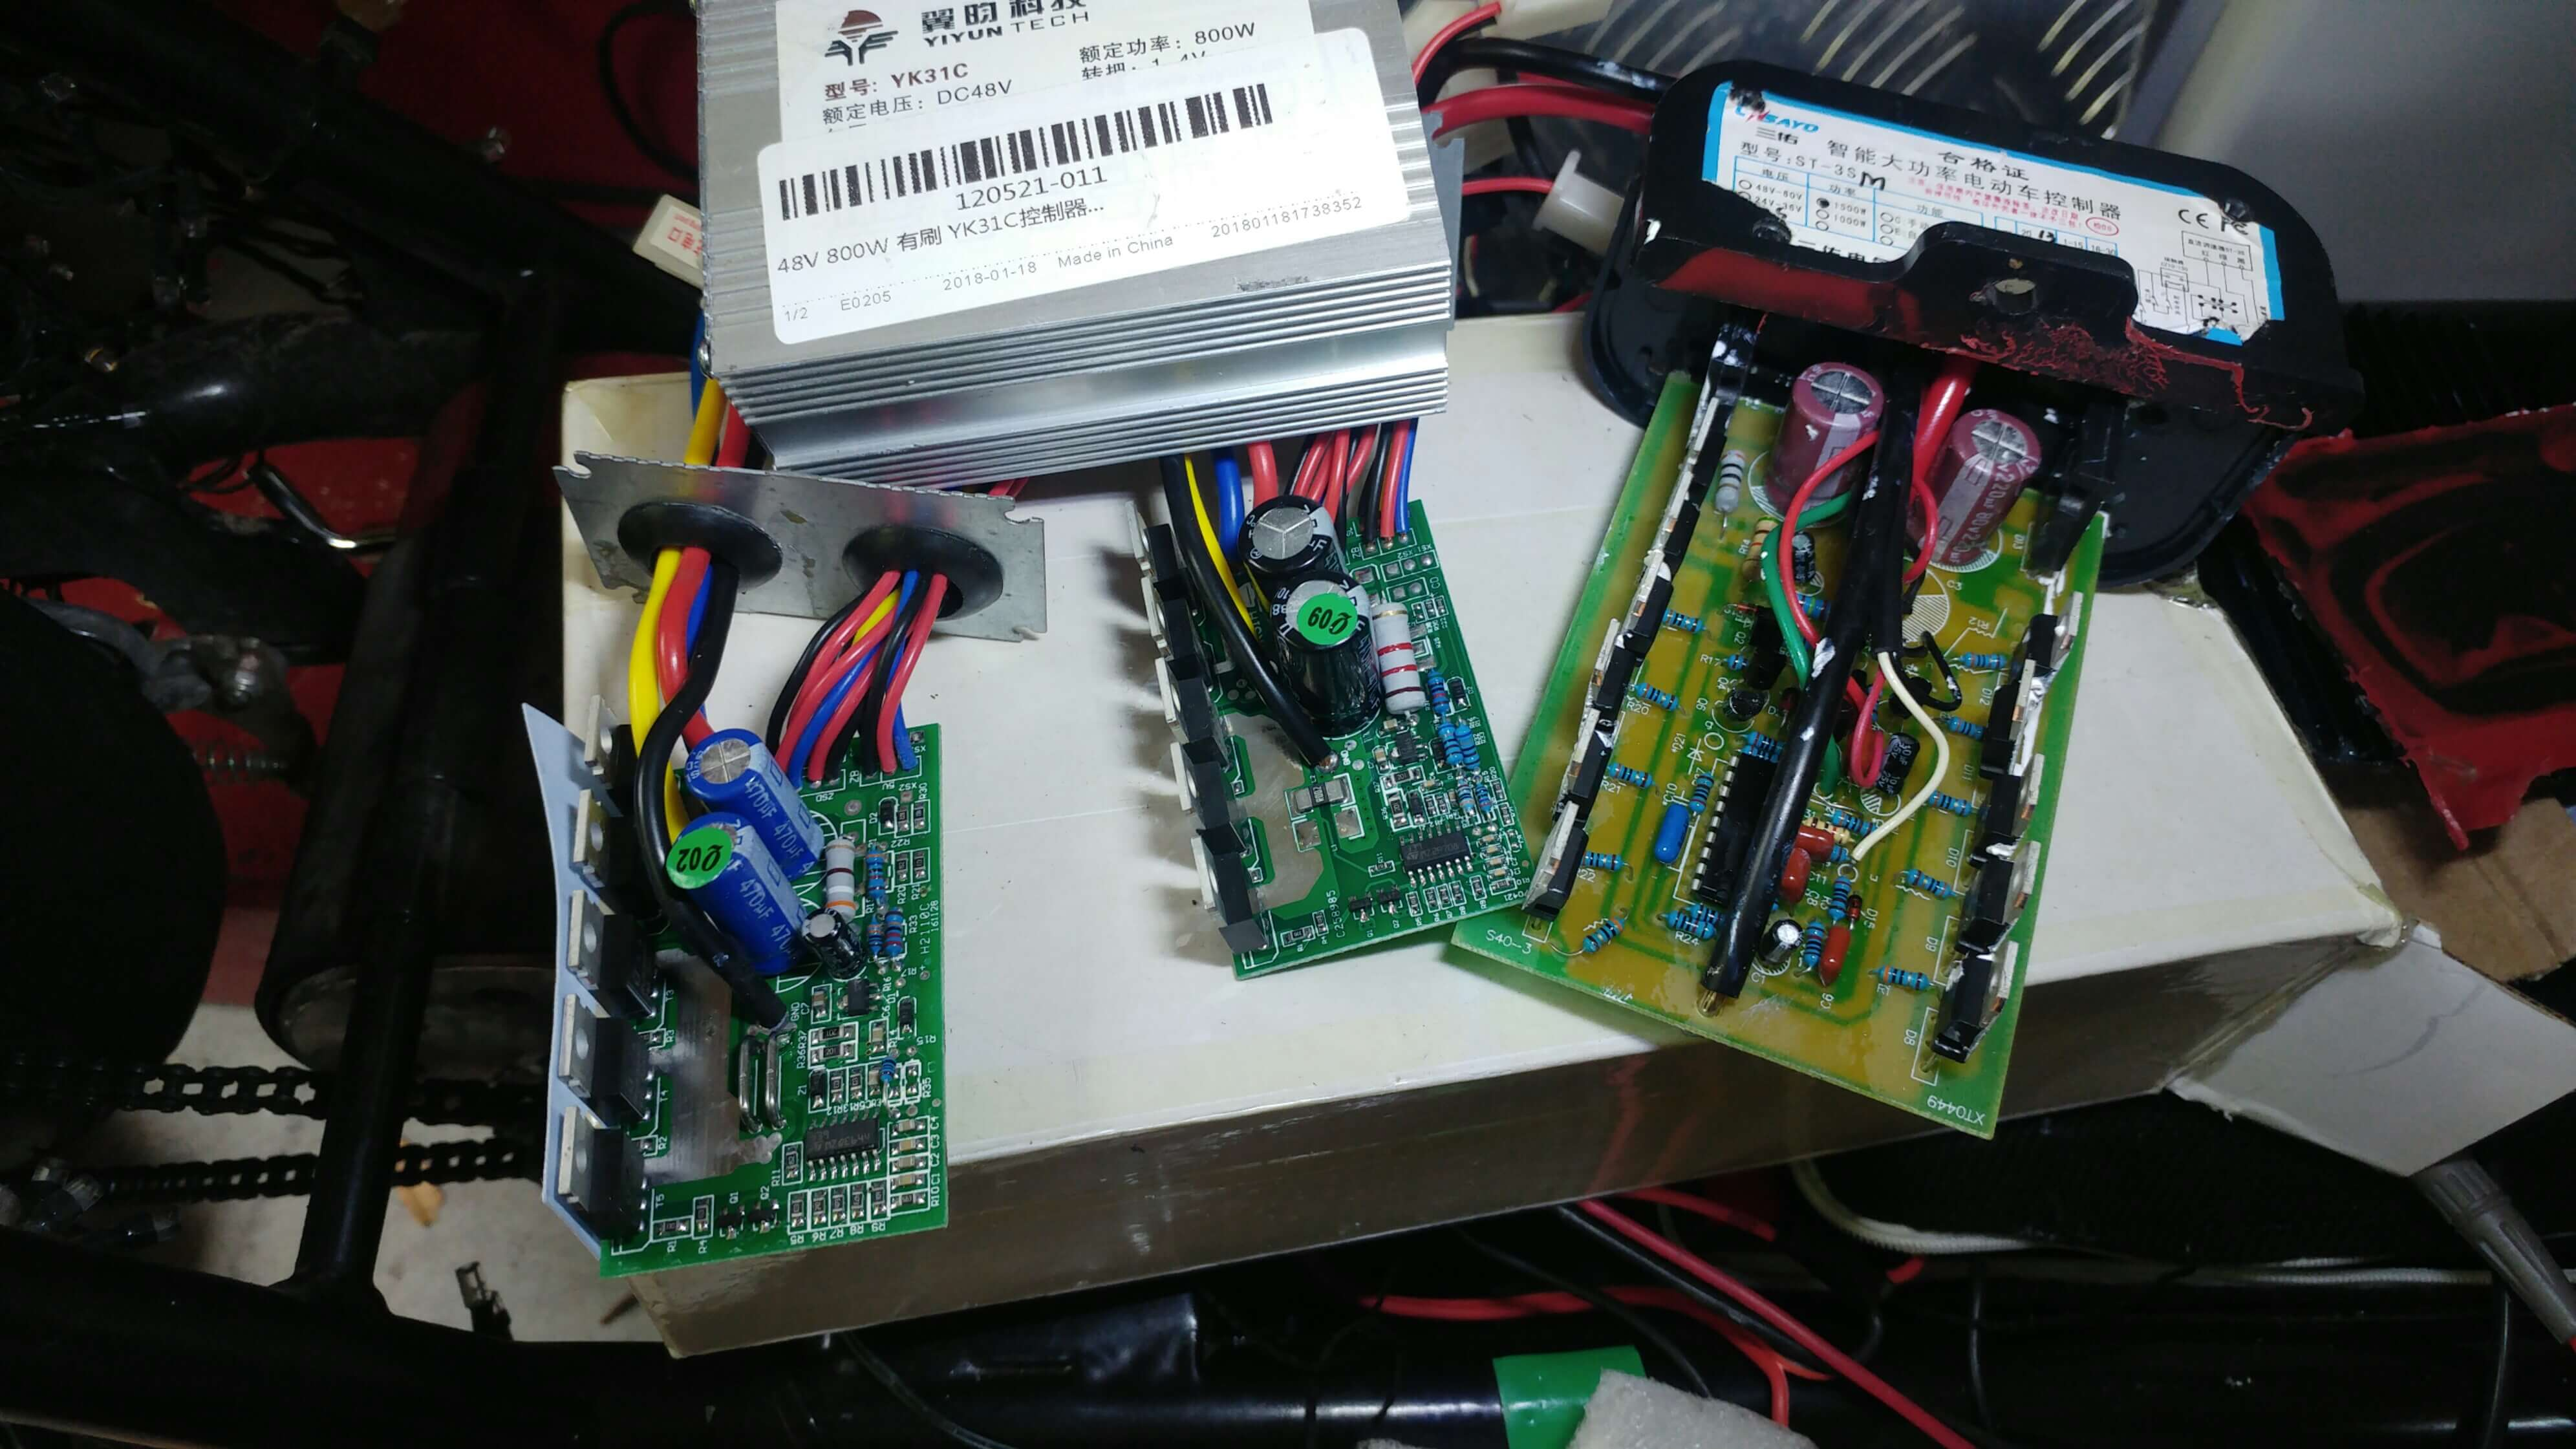 24v 36v Yiyun Yk31c Controller For Brush Motor Relay Wiring Diagram Together With Dc Control Circuit I